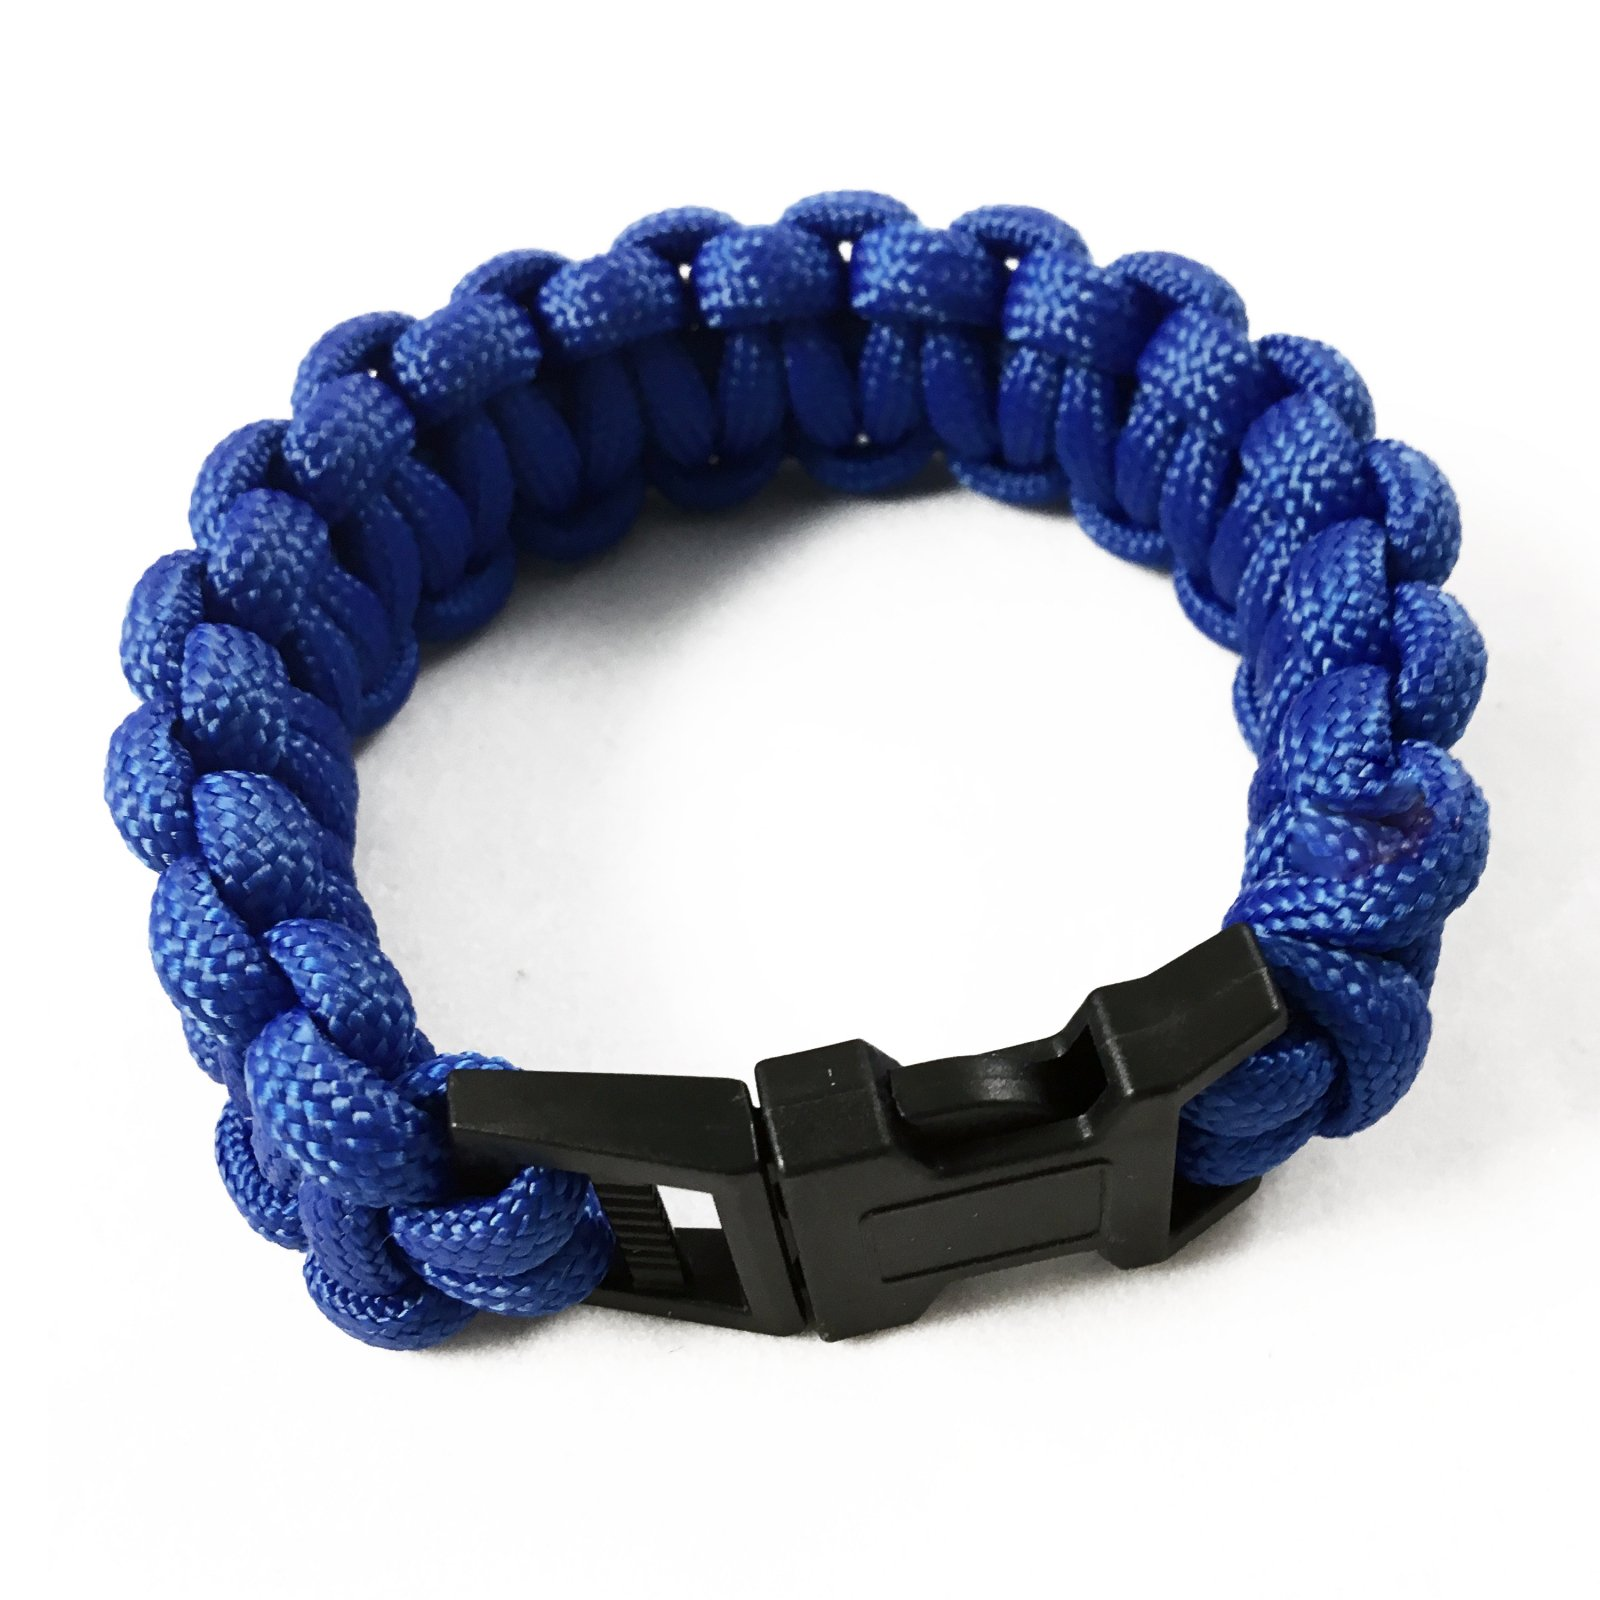 ASR Outdoor - Paracord Bracelet - Blue